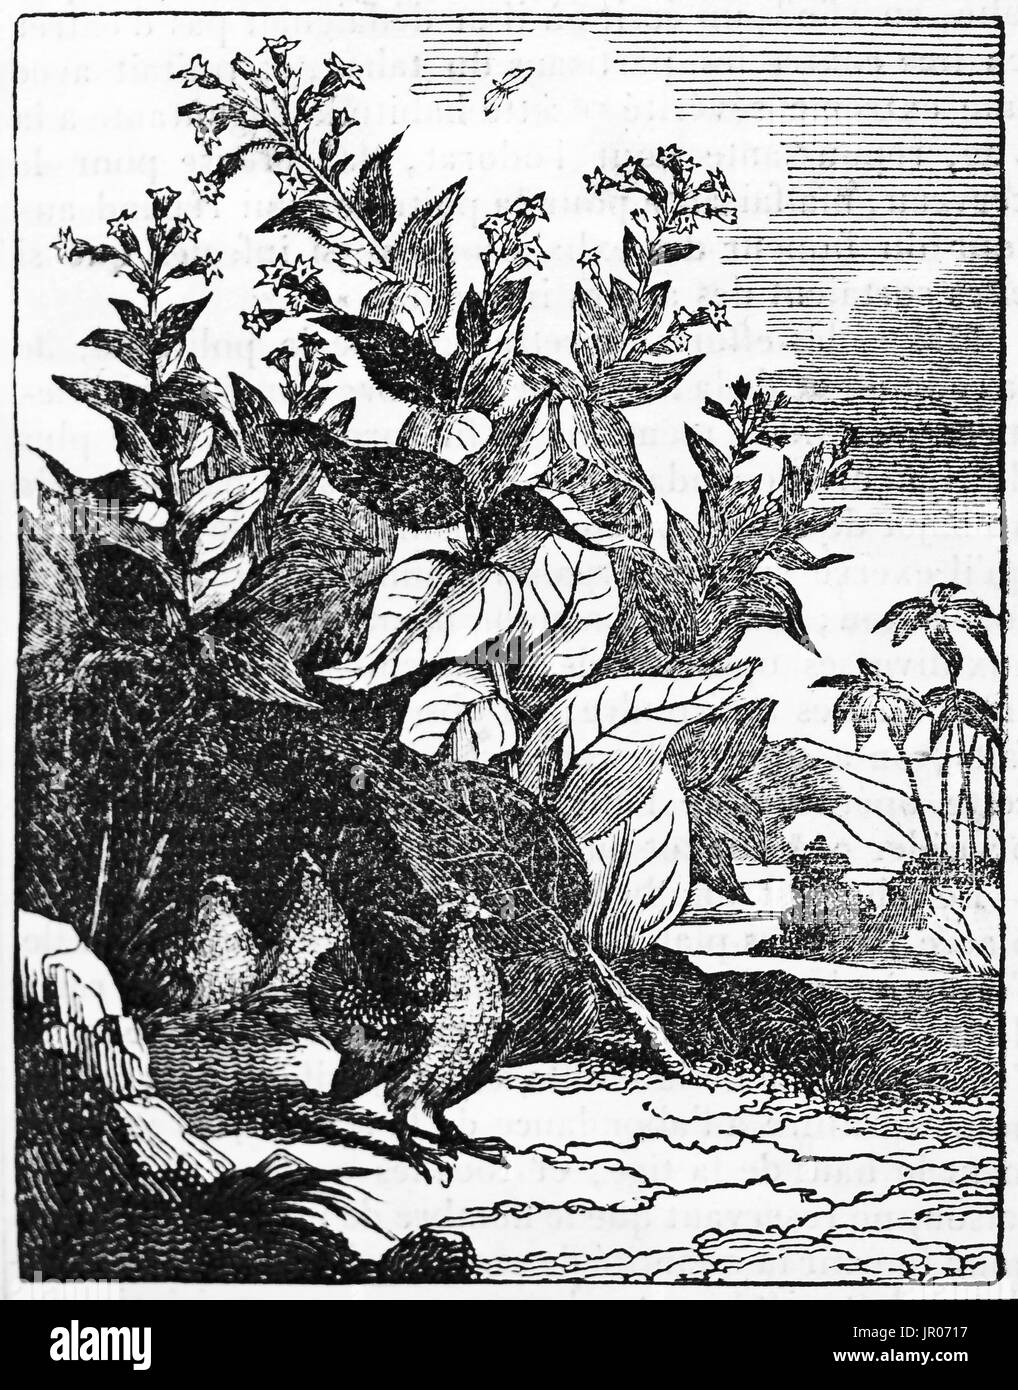 Old illustration of cultivated tobacco (Nicotiana tabacum). By unidentified author, published on Magasin Pittoresque, 1833. - Stock Image